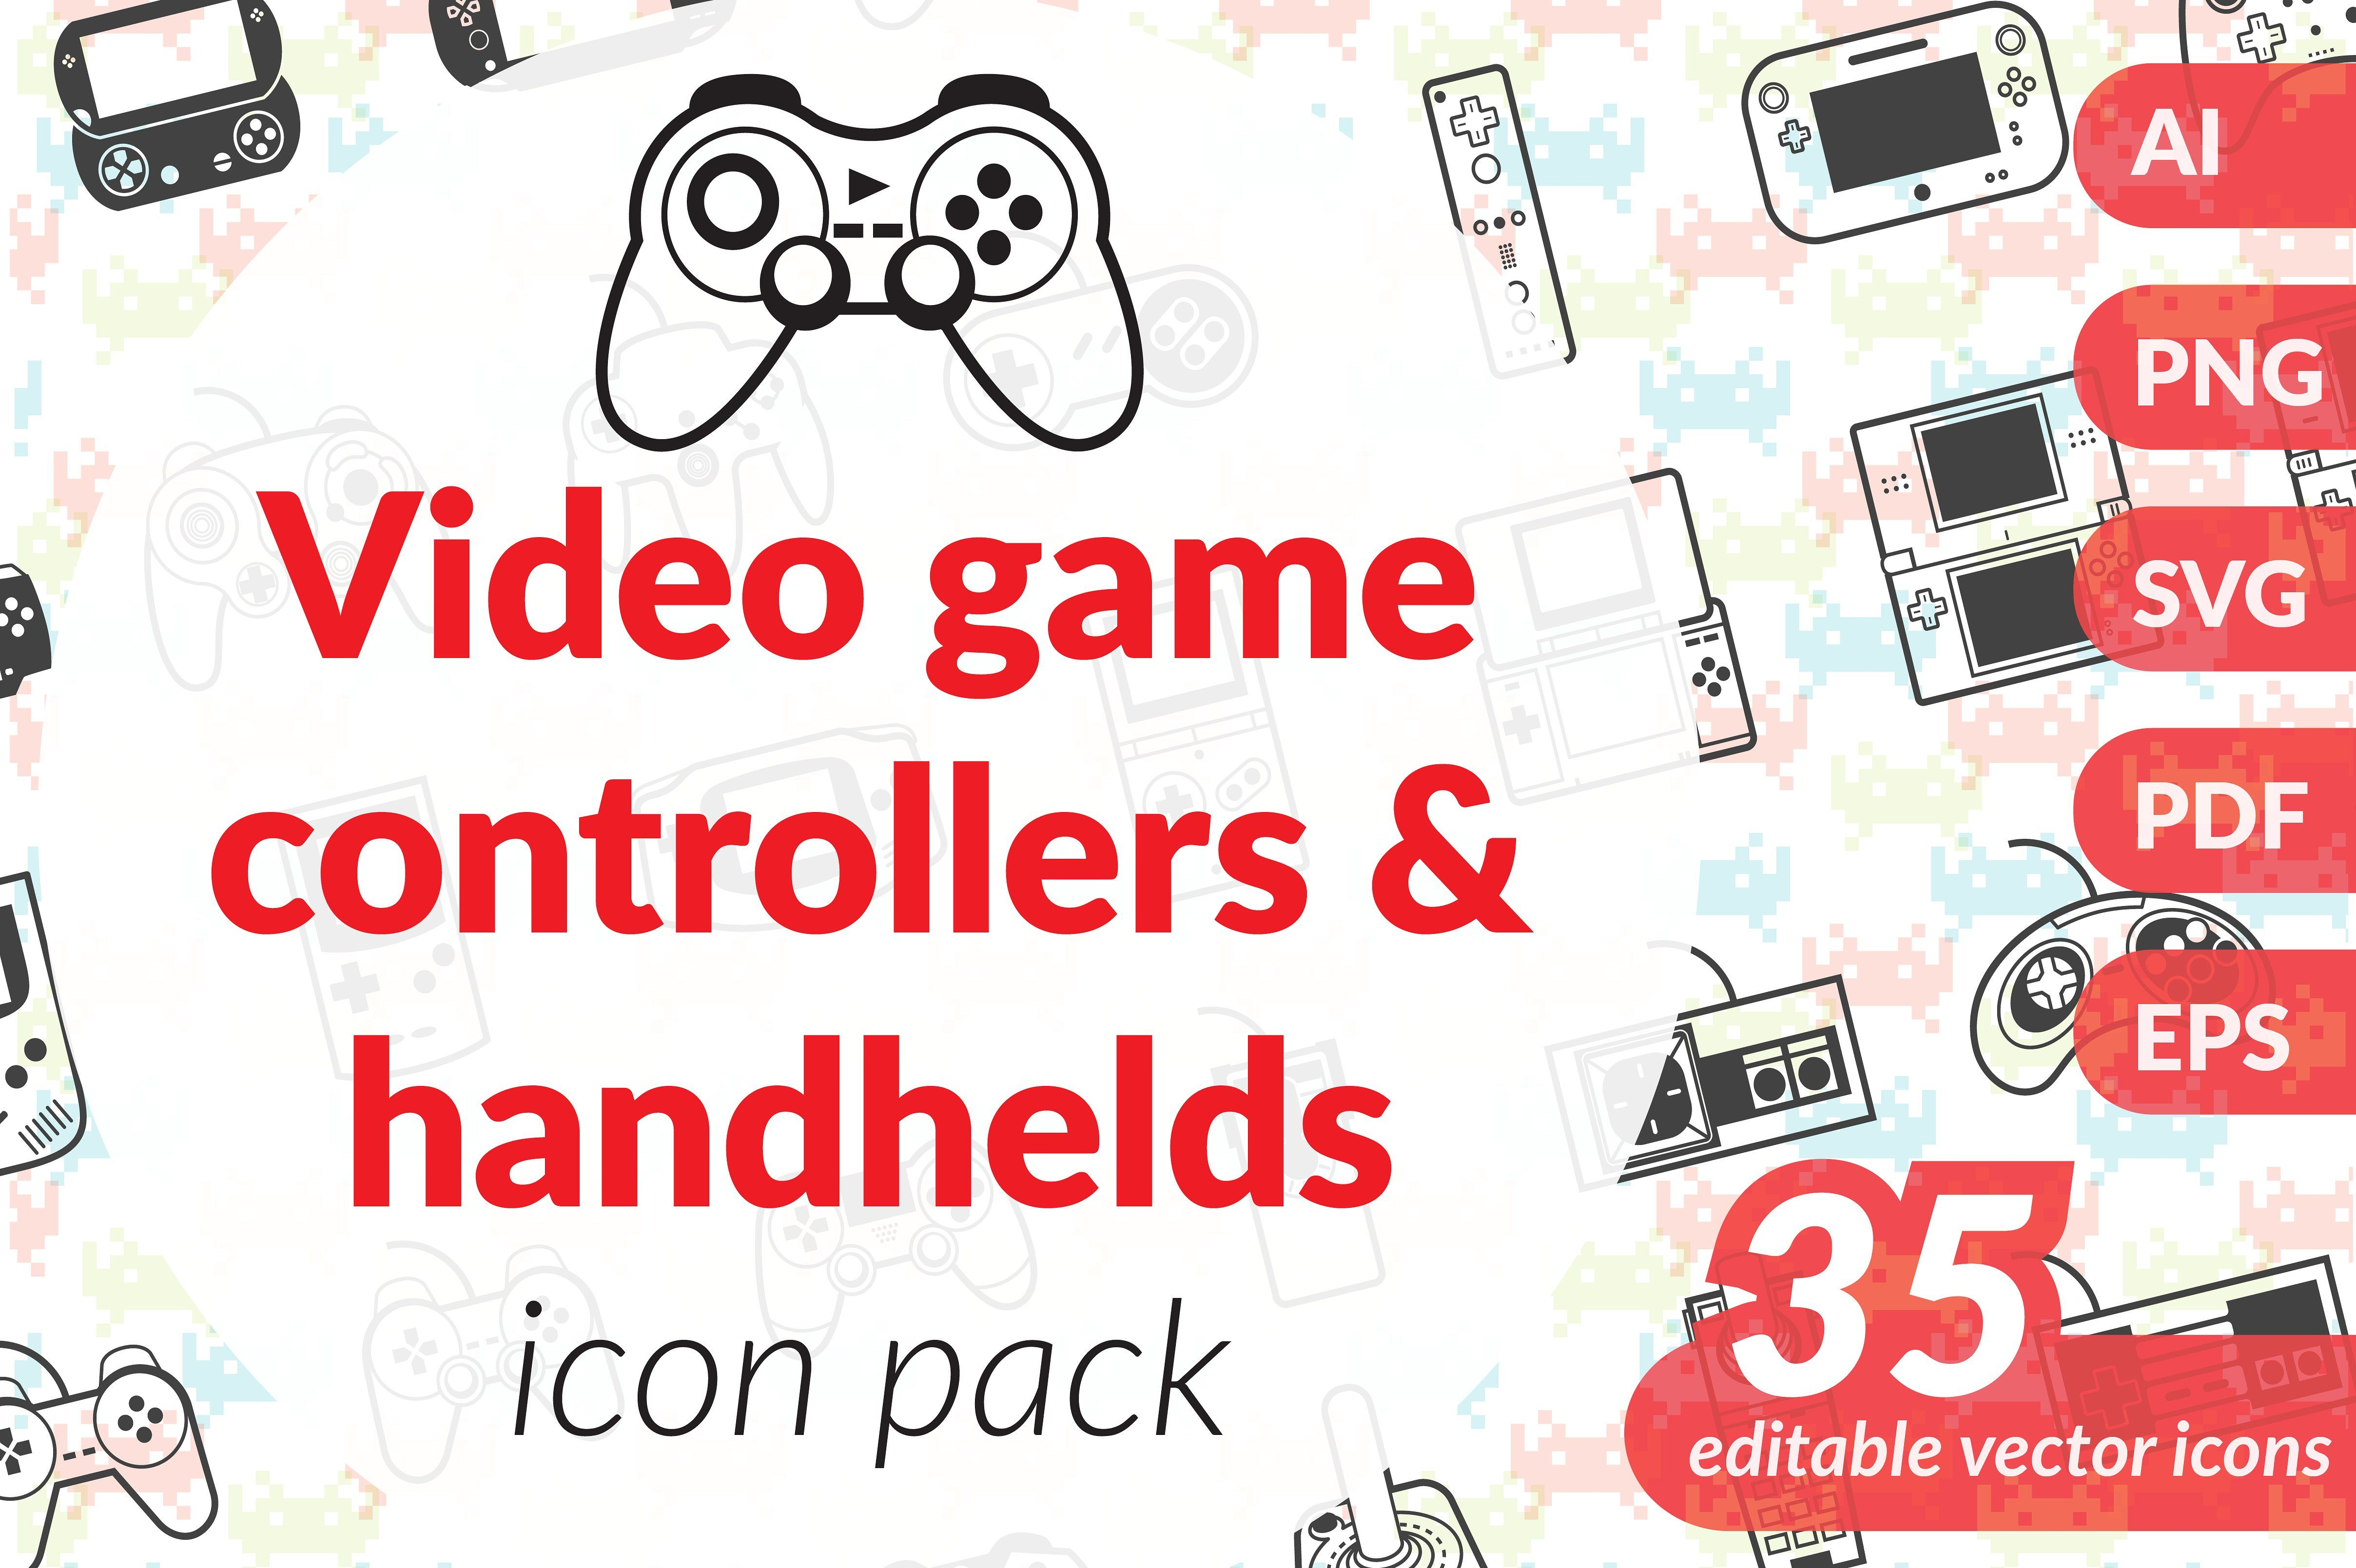 Gaming icon pack Icon pack, Icon, Video game controller